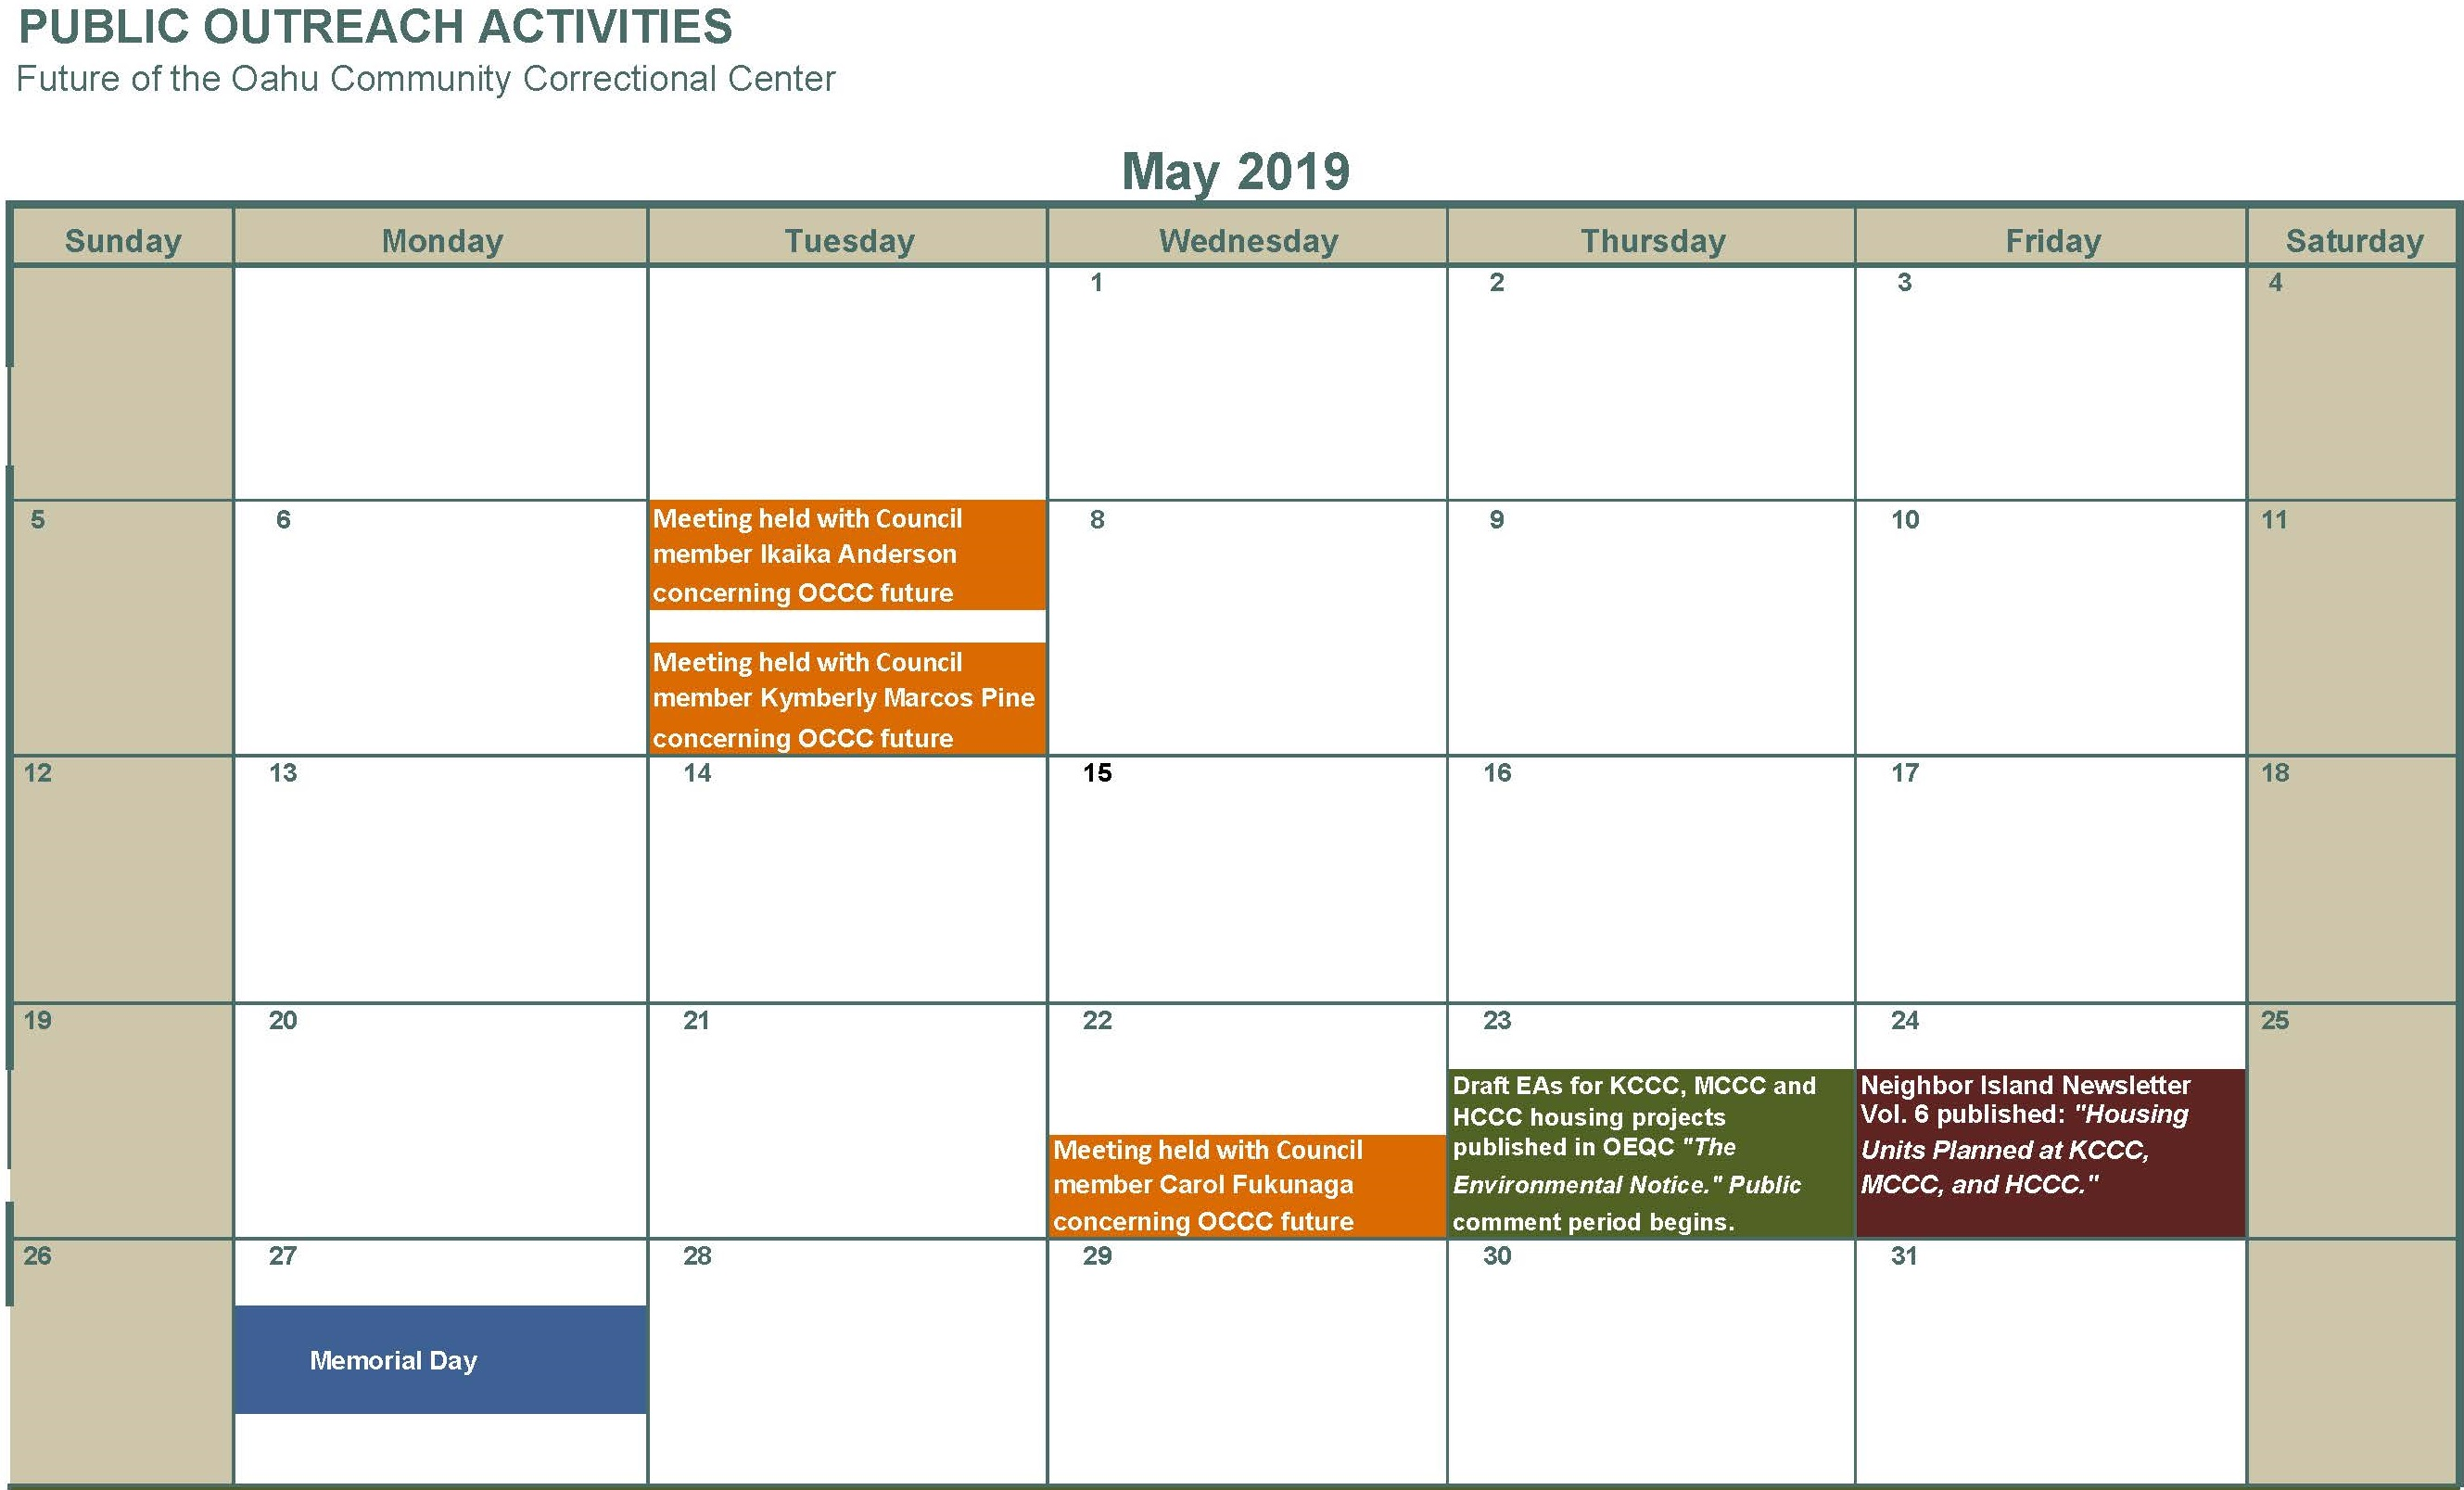 May 2019 Individual meetings with Council member Ikaika Anderson Kymberly Marcos Pine and Carol Fukunaga Draft EAs for KCCC MCCC and HCCC housing projects published public comment period begins